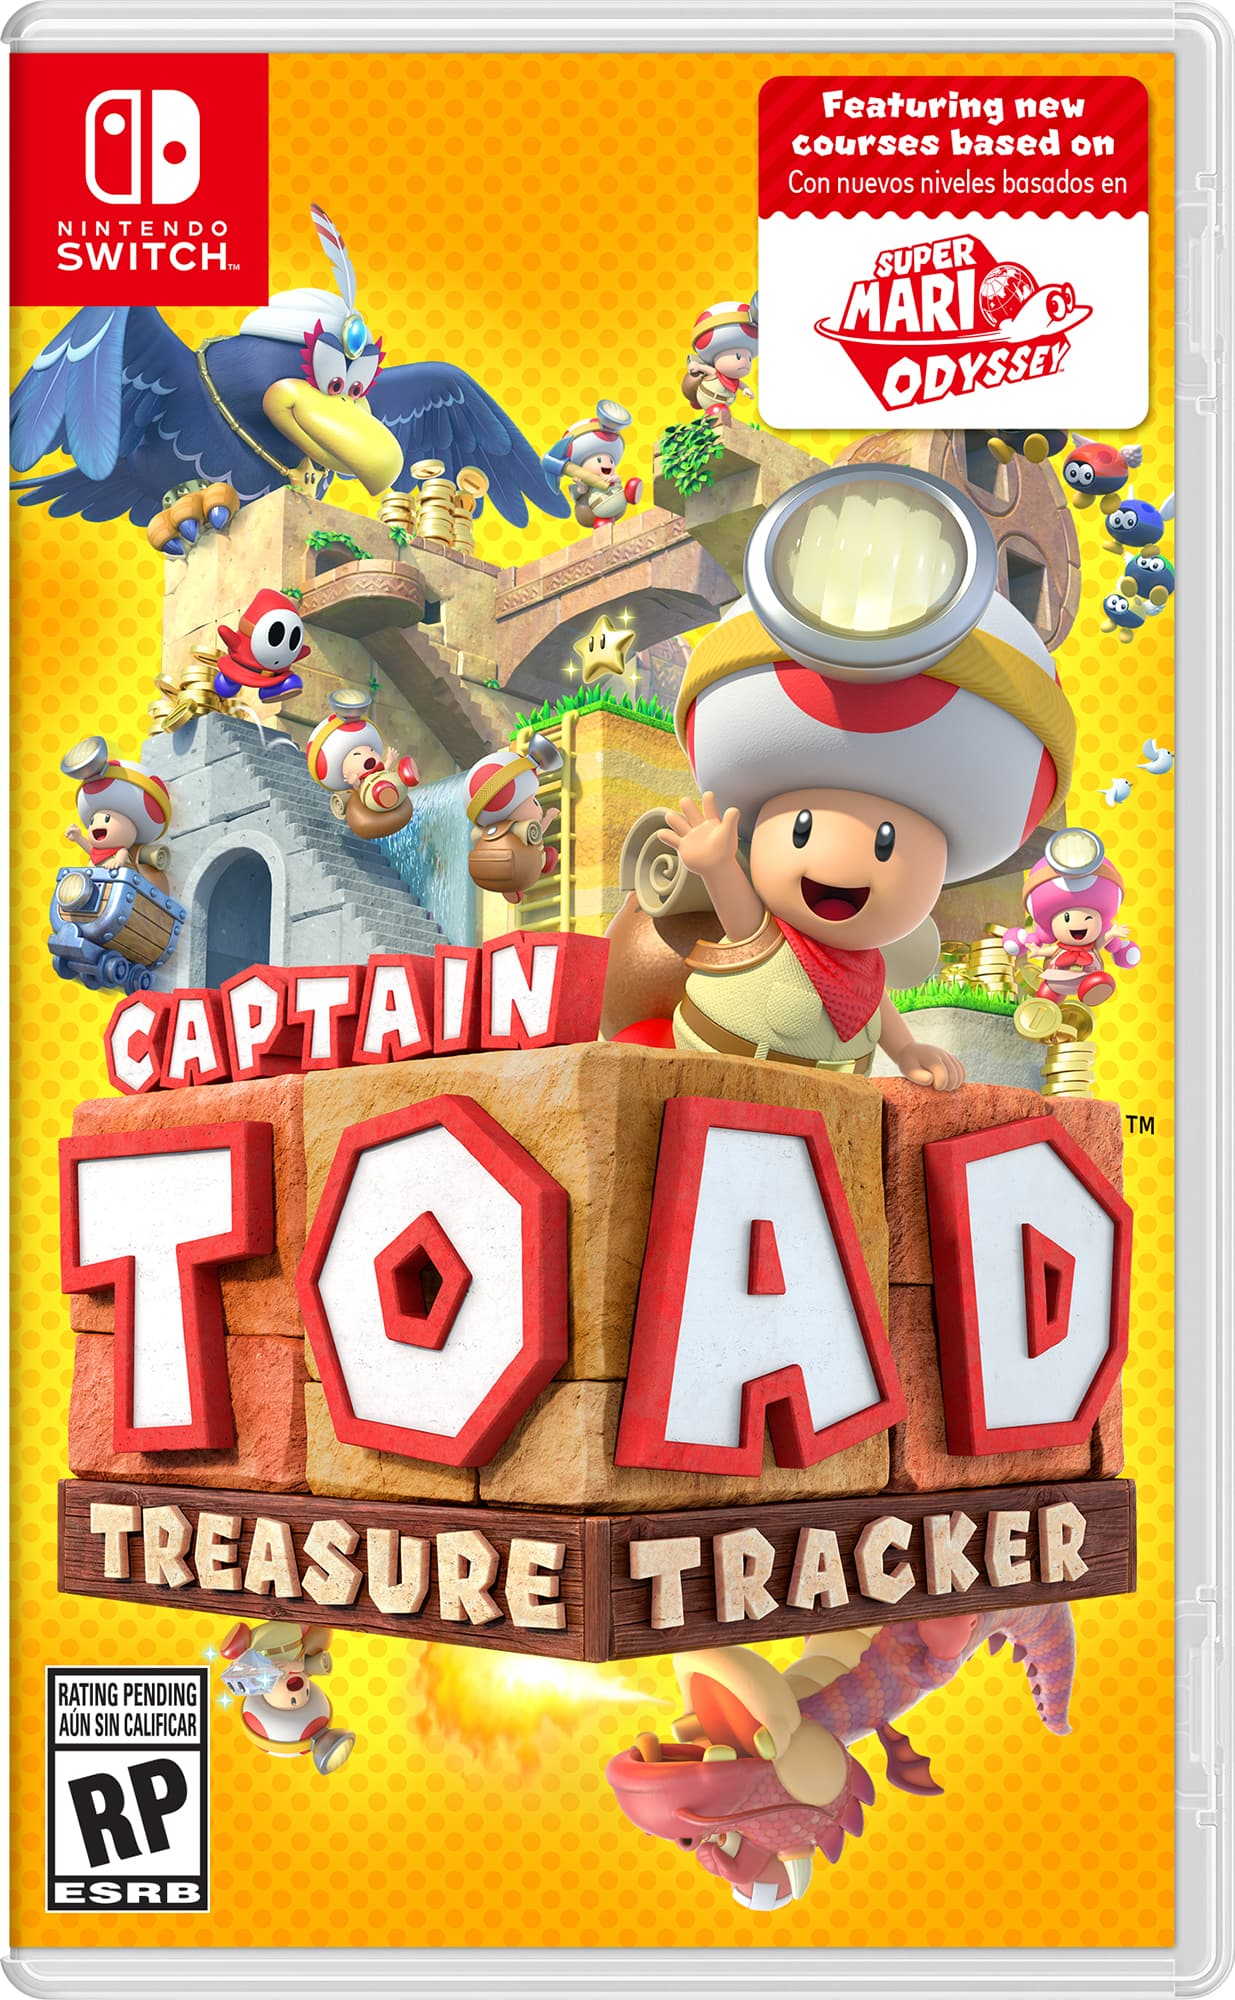 Captain Toad: Treasure Tracker - Nintendo Switch $27.50 free in store pickup at walmart